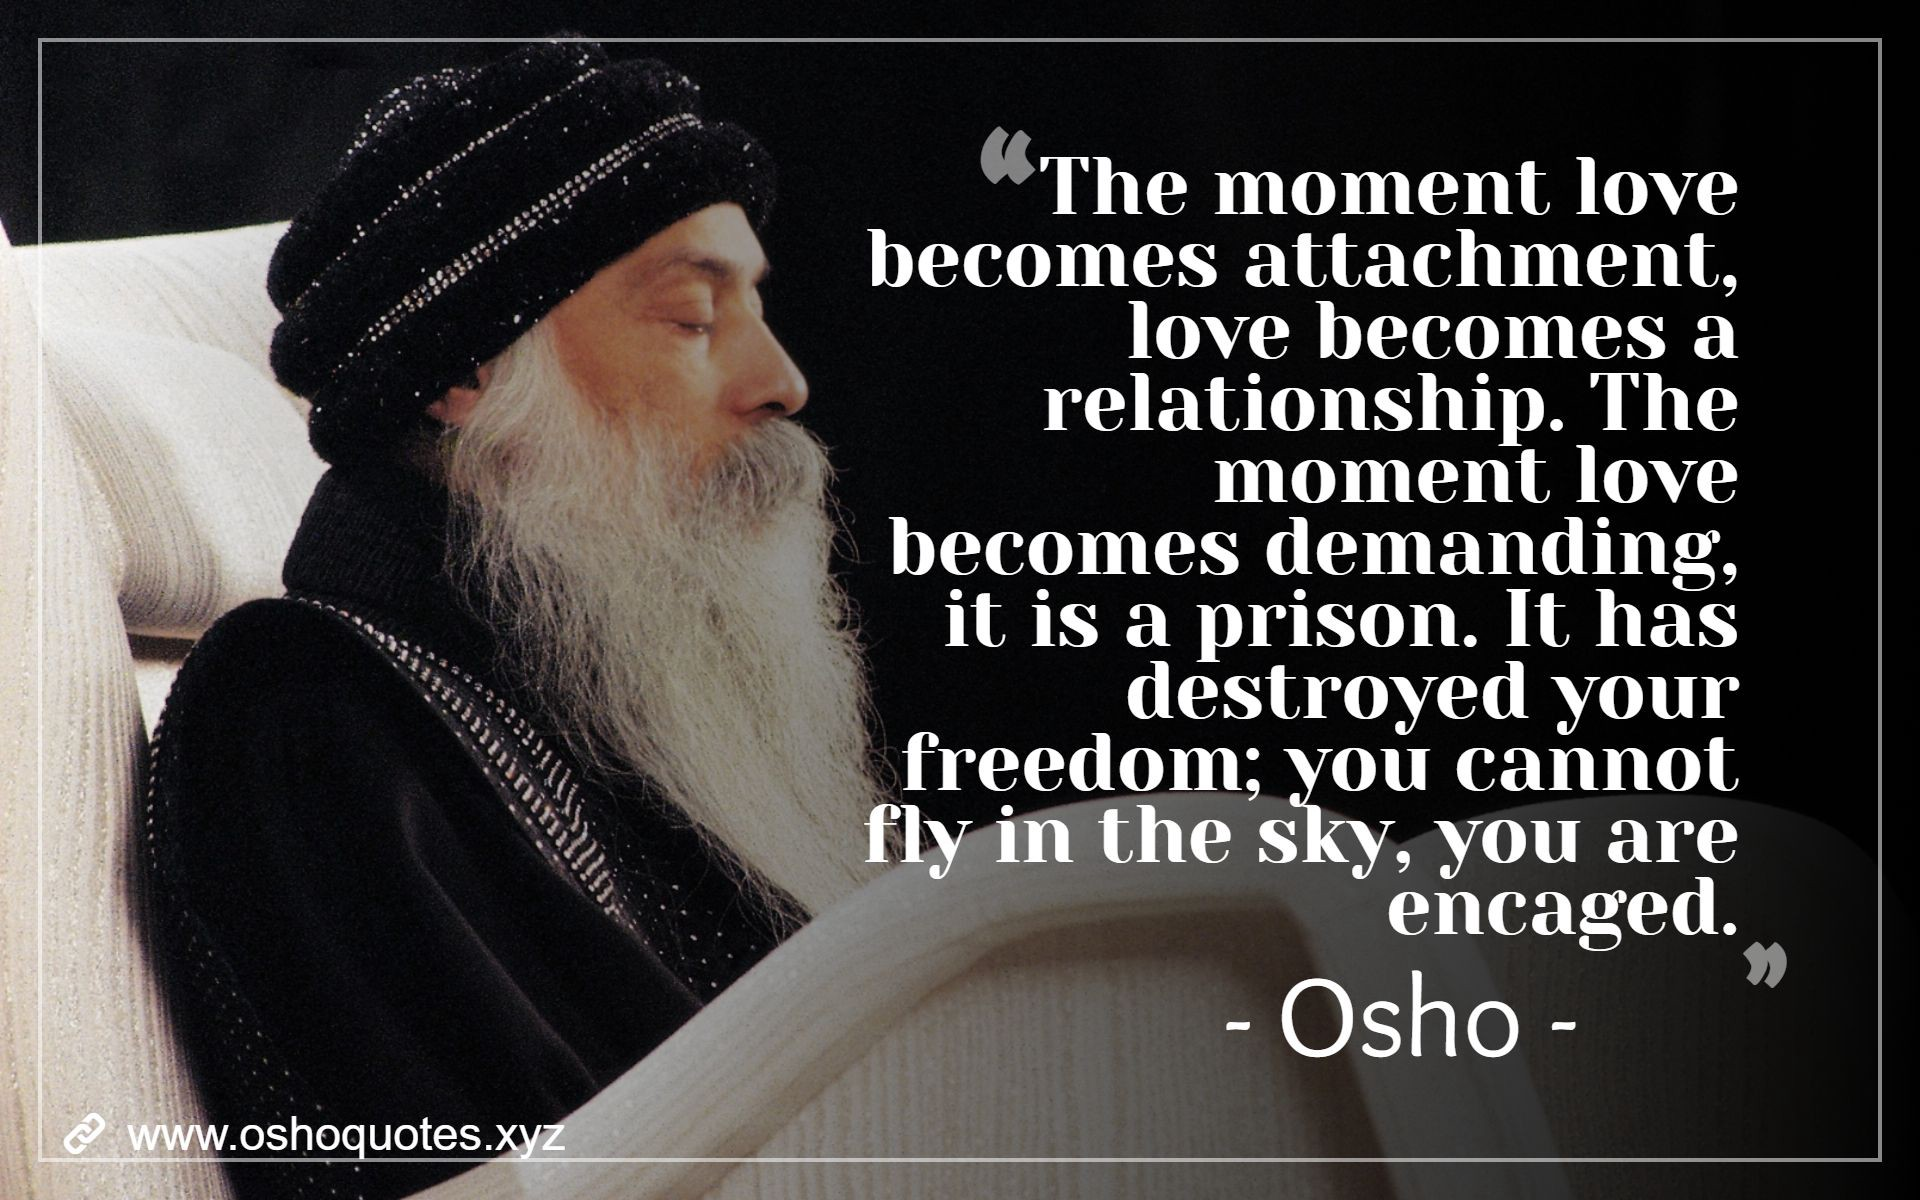 Best 9 Osho Quotes on Life that inspire.  Medium